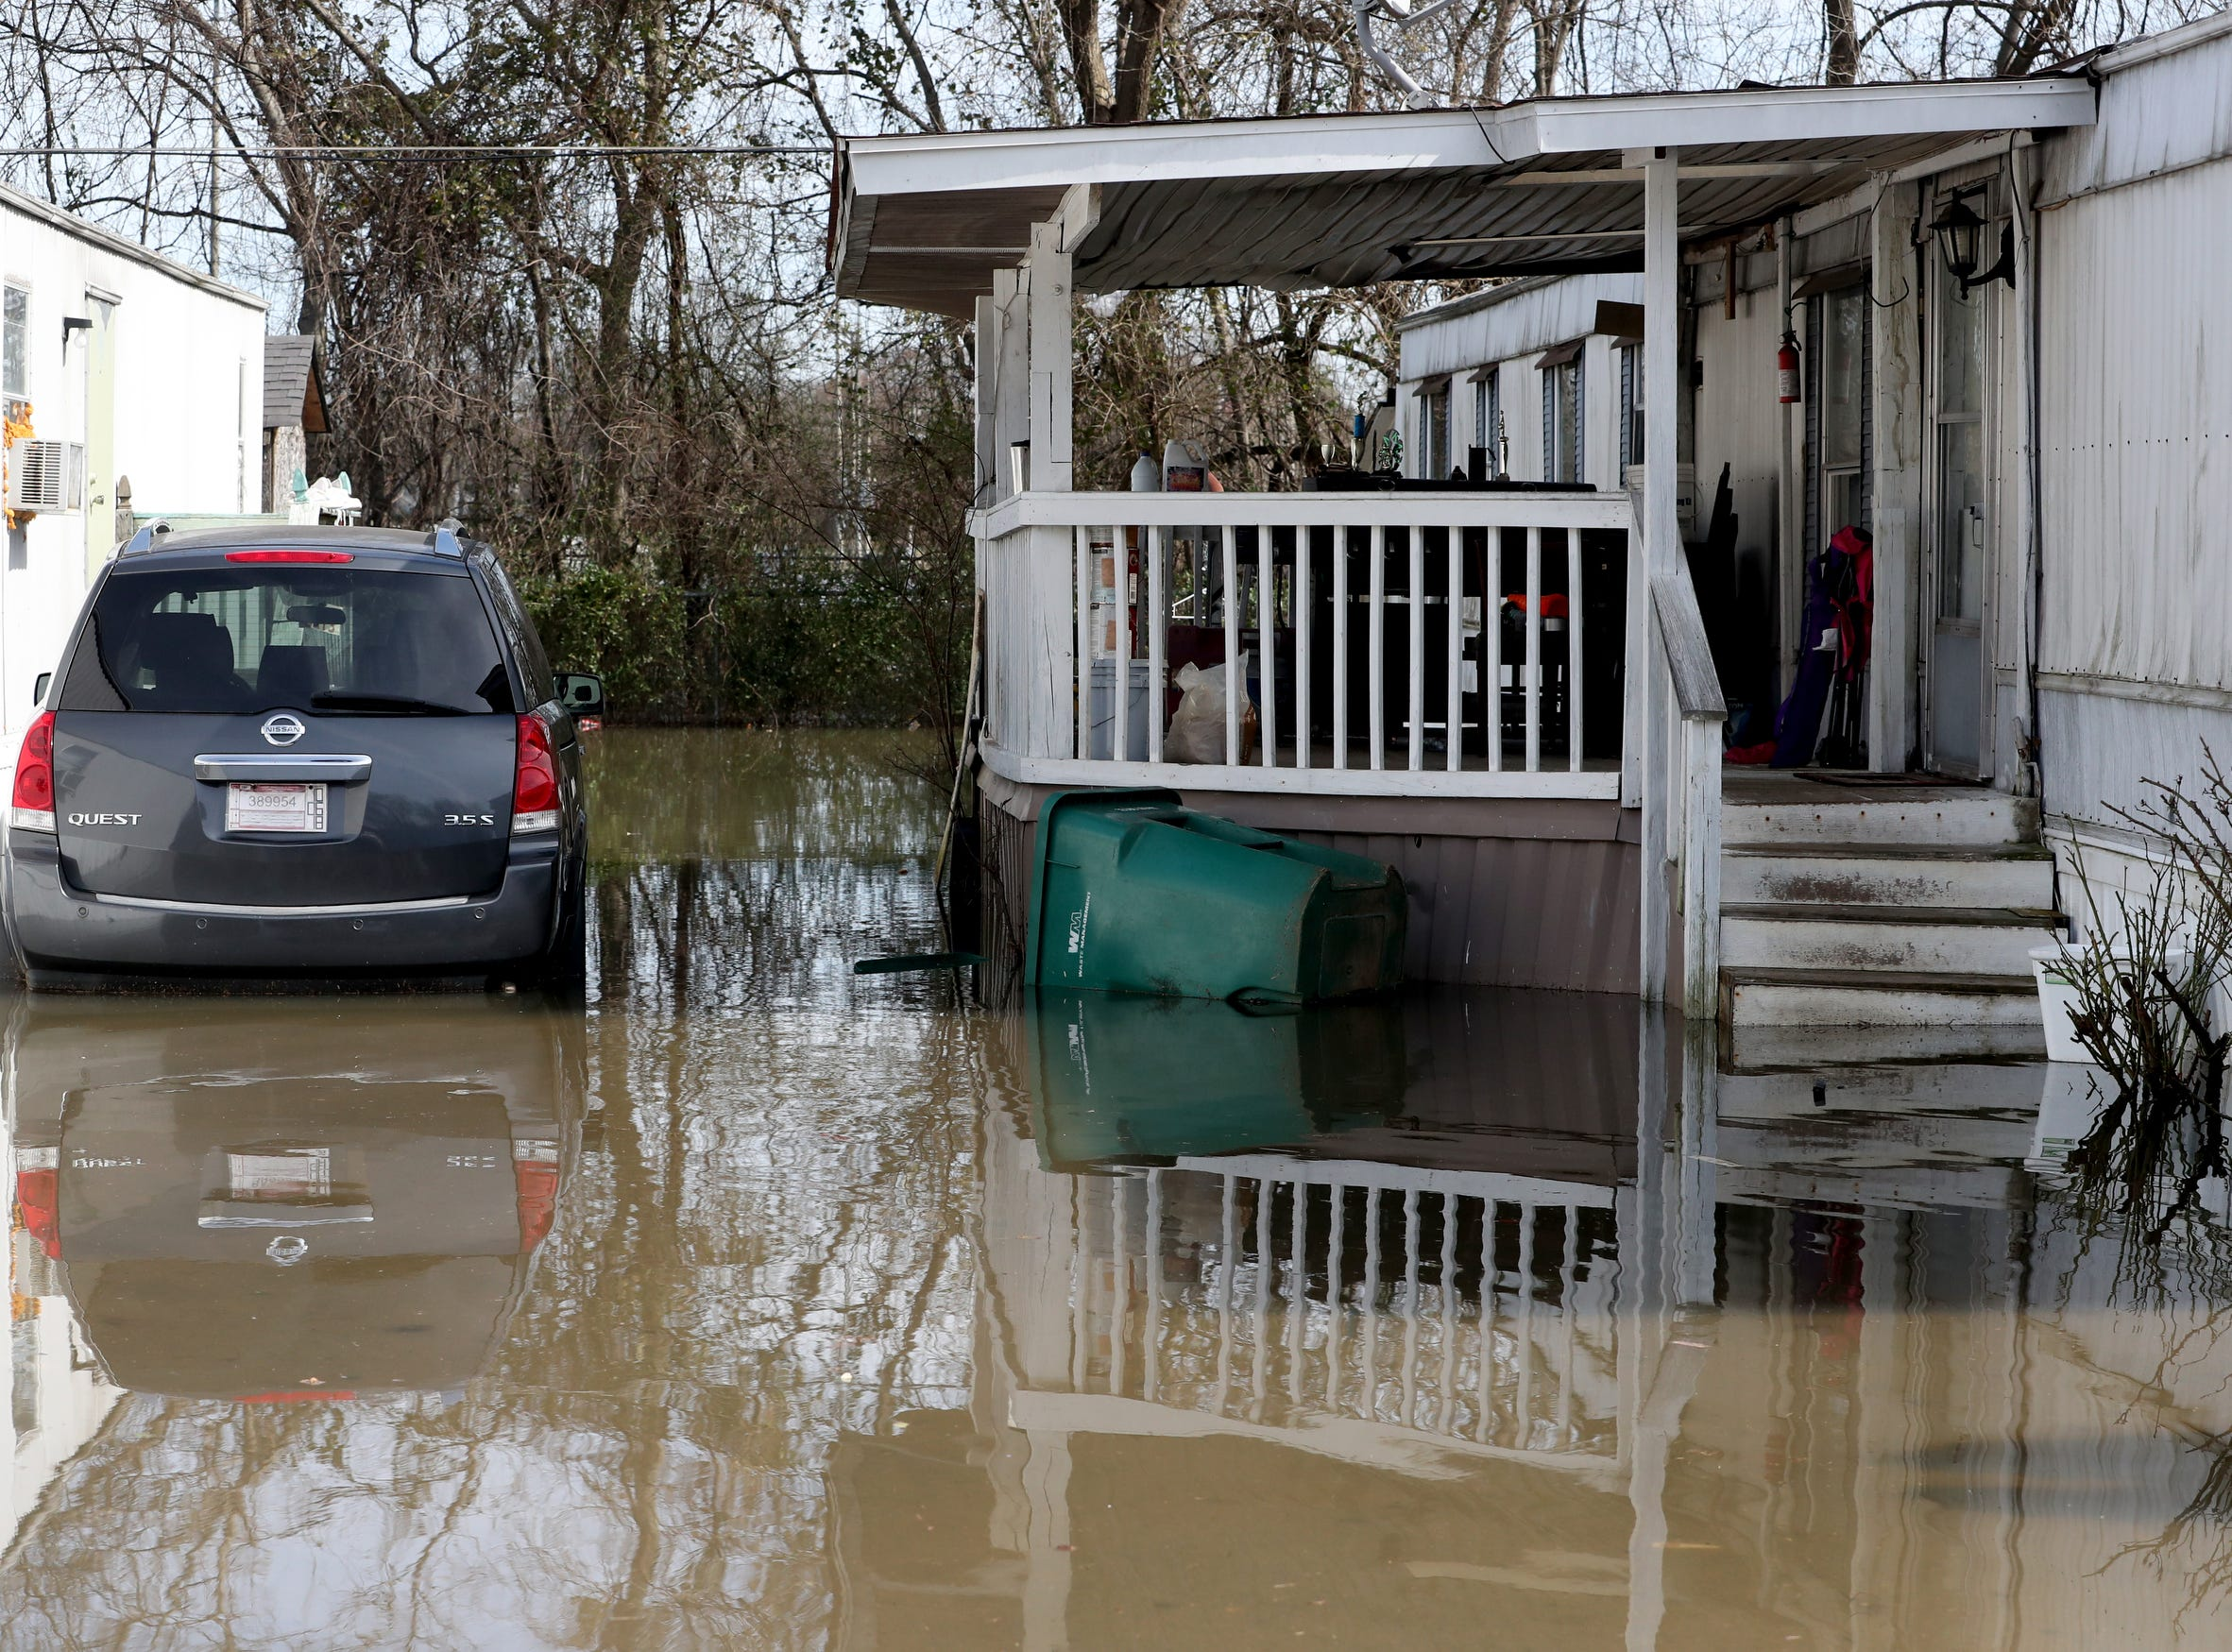 Flood waters remain high on on Monday, Feb. 25, 2019, after a nearby creek flooded many homes, over the weekend in the Maple Manor Community Mobile Home Park, on Monday, Feb. 25, 2019.